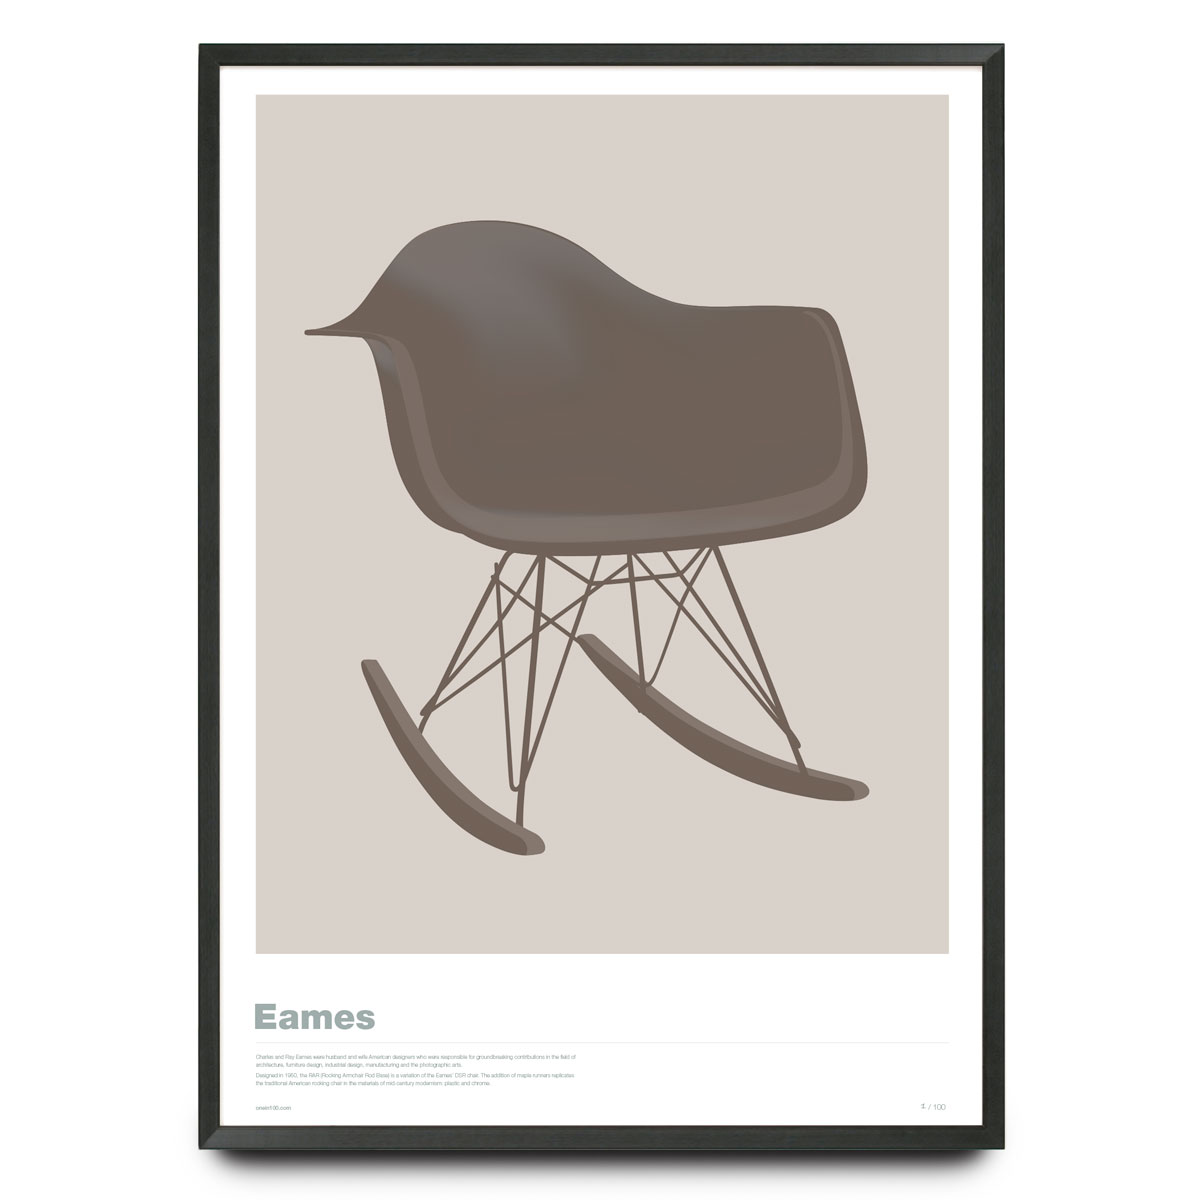 Eames Rar Eames Rar In Warm Grey